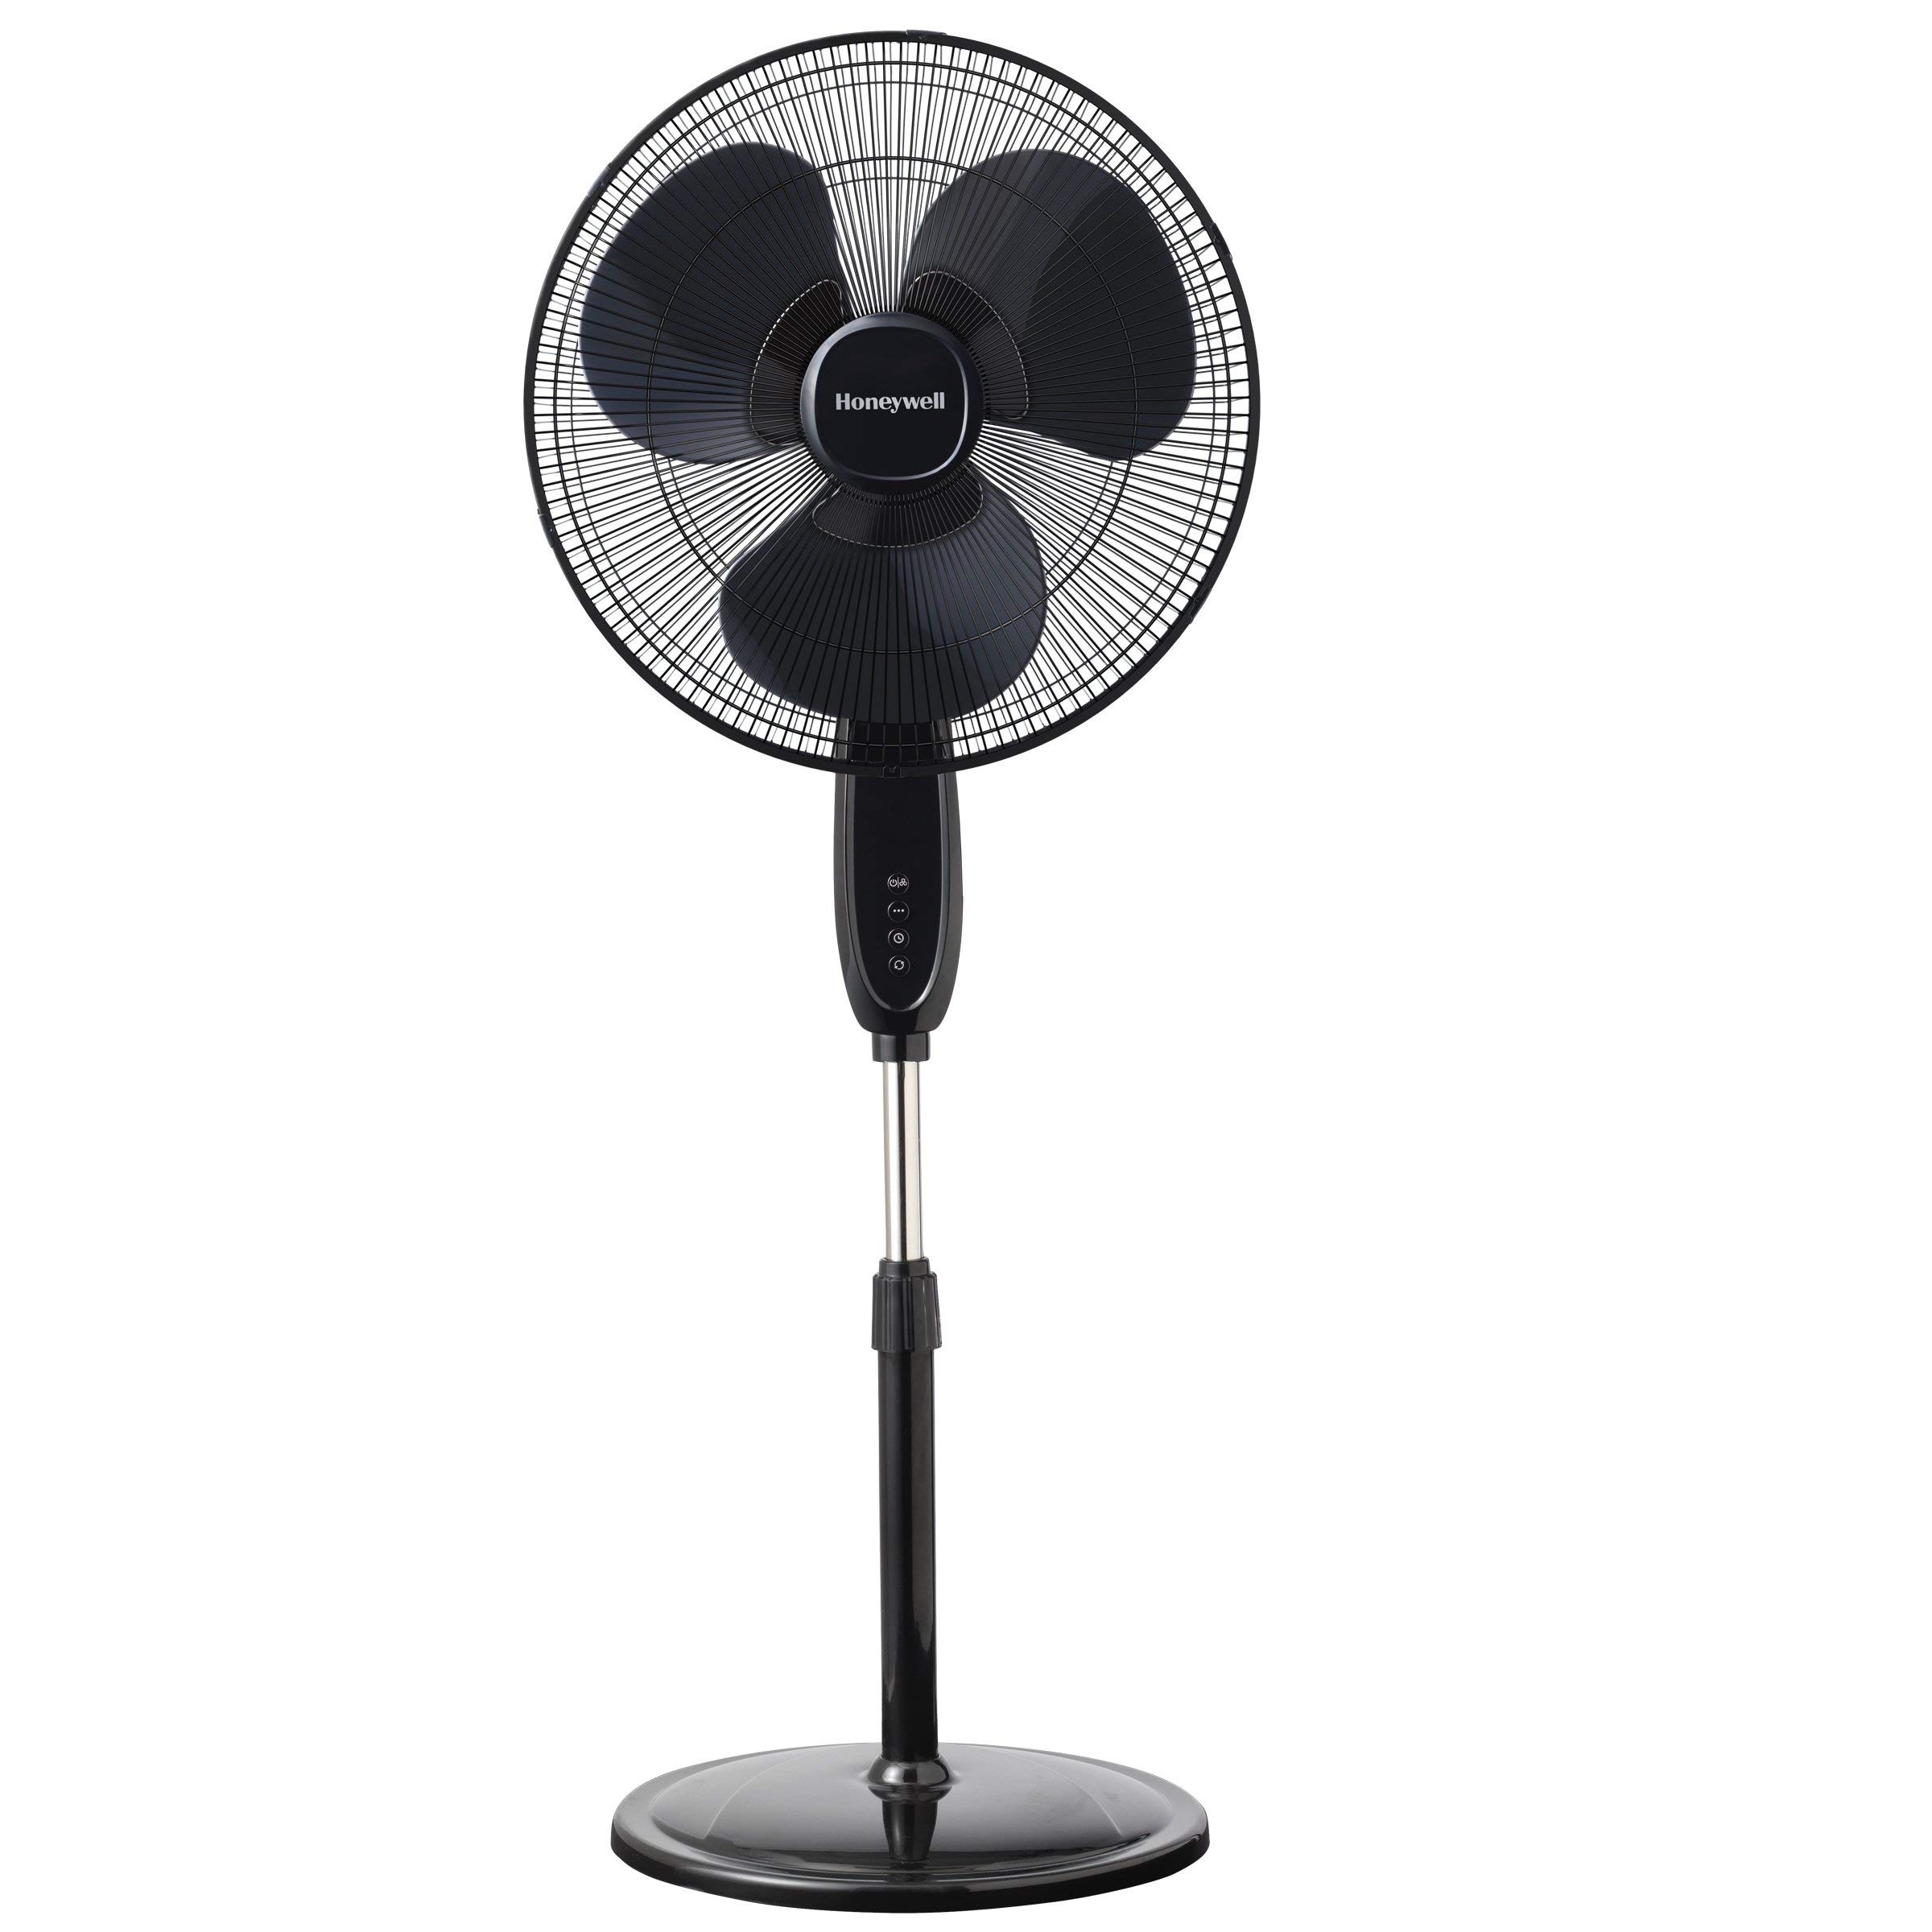 Honeywell Double Blade 16 Pedestal Fan Black With Remote Control, Oscillation, Auto-Off & 3 Power Settings (Renewed) by Honeywell